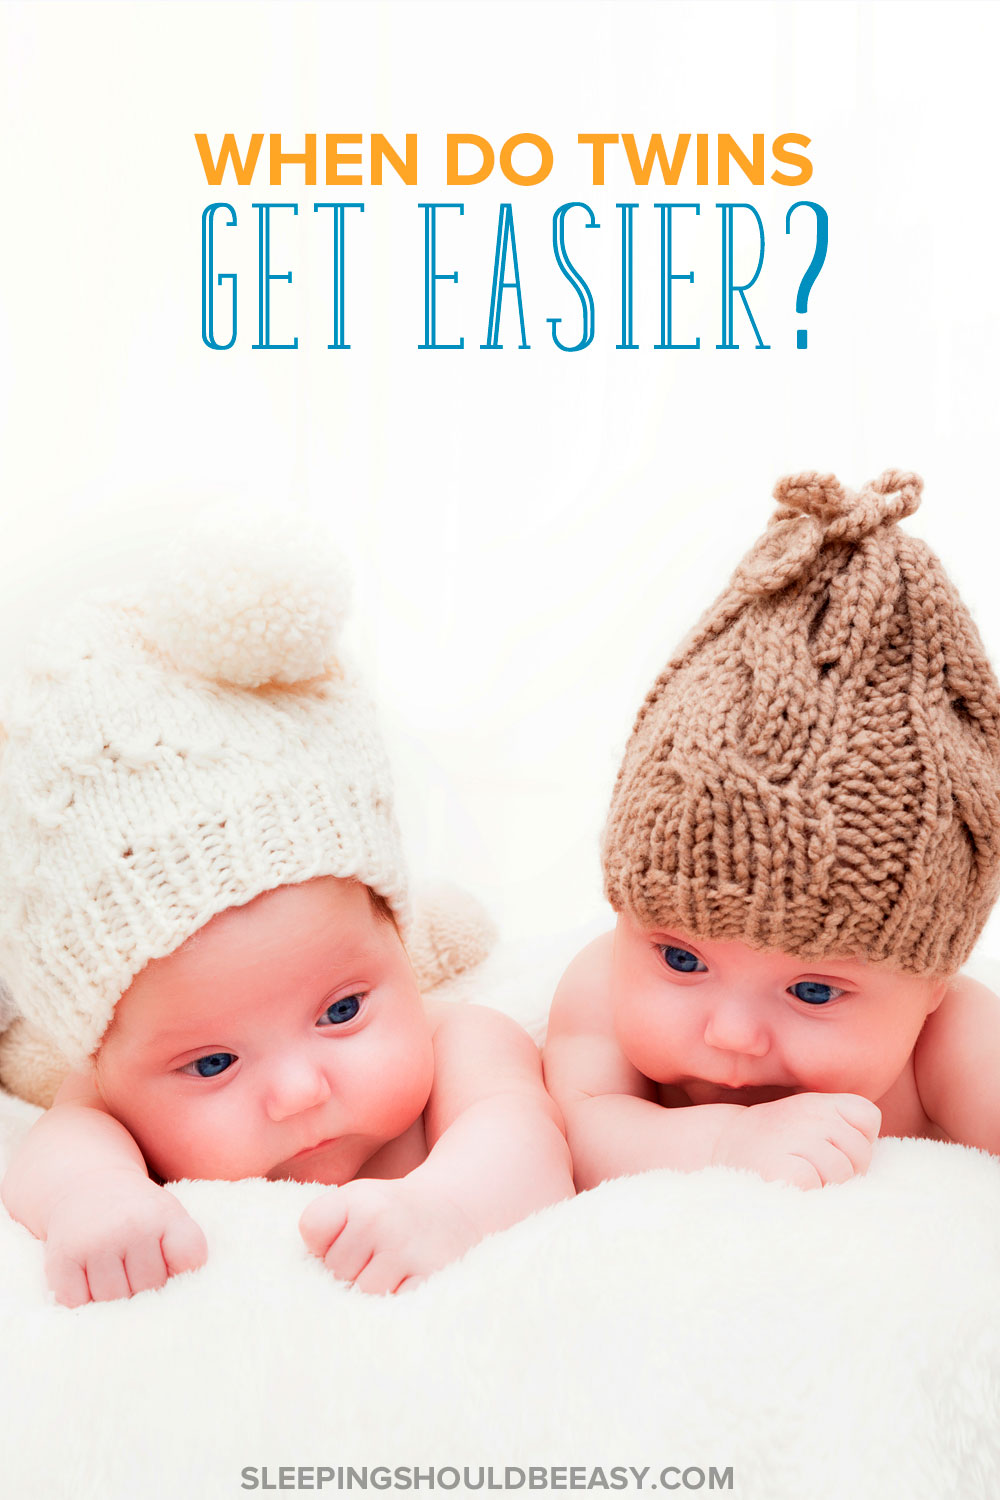 When does caring for twins get easier? Taking care of twins, especially in the first few weeks and months, is one of the hardest things to do. Here are the milestones that mark when it gets easier as well tips on how to cope through the difficulties, especially when you're caring for twins alone.